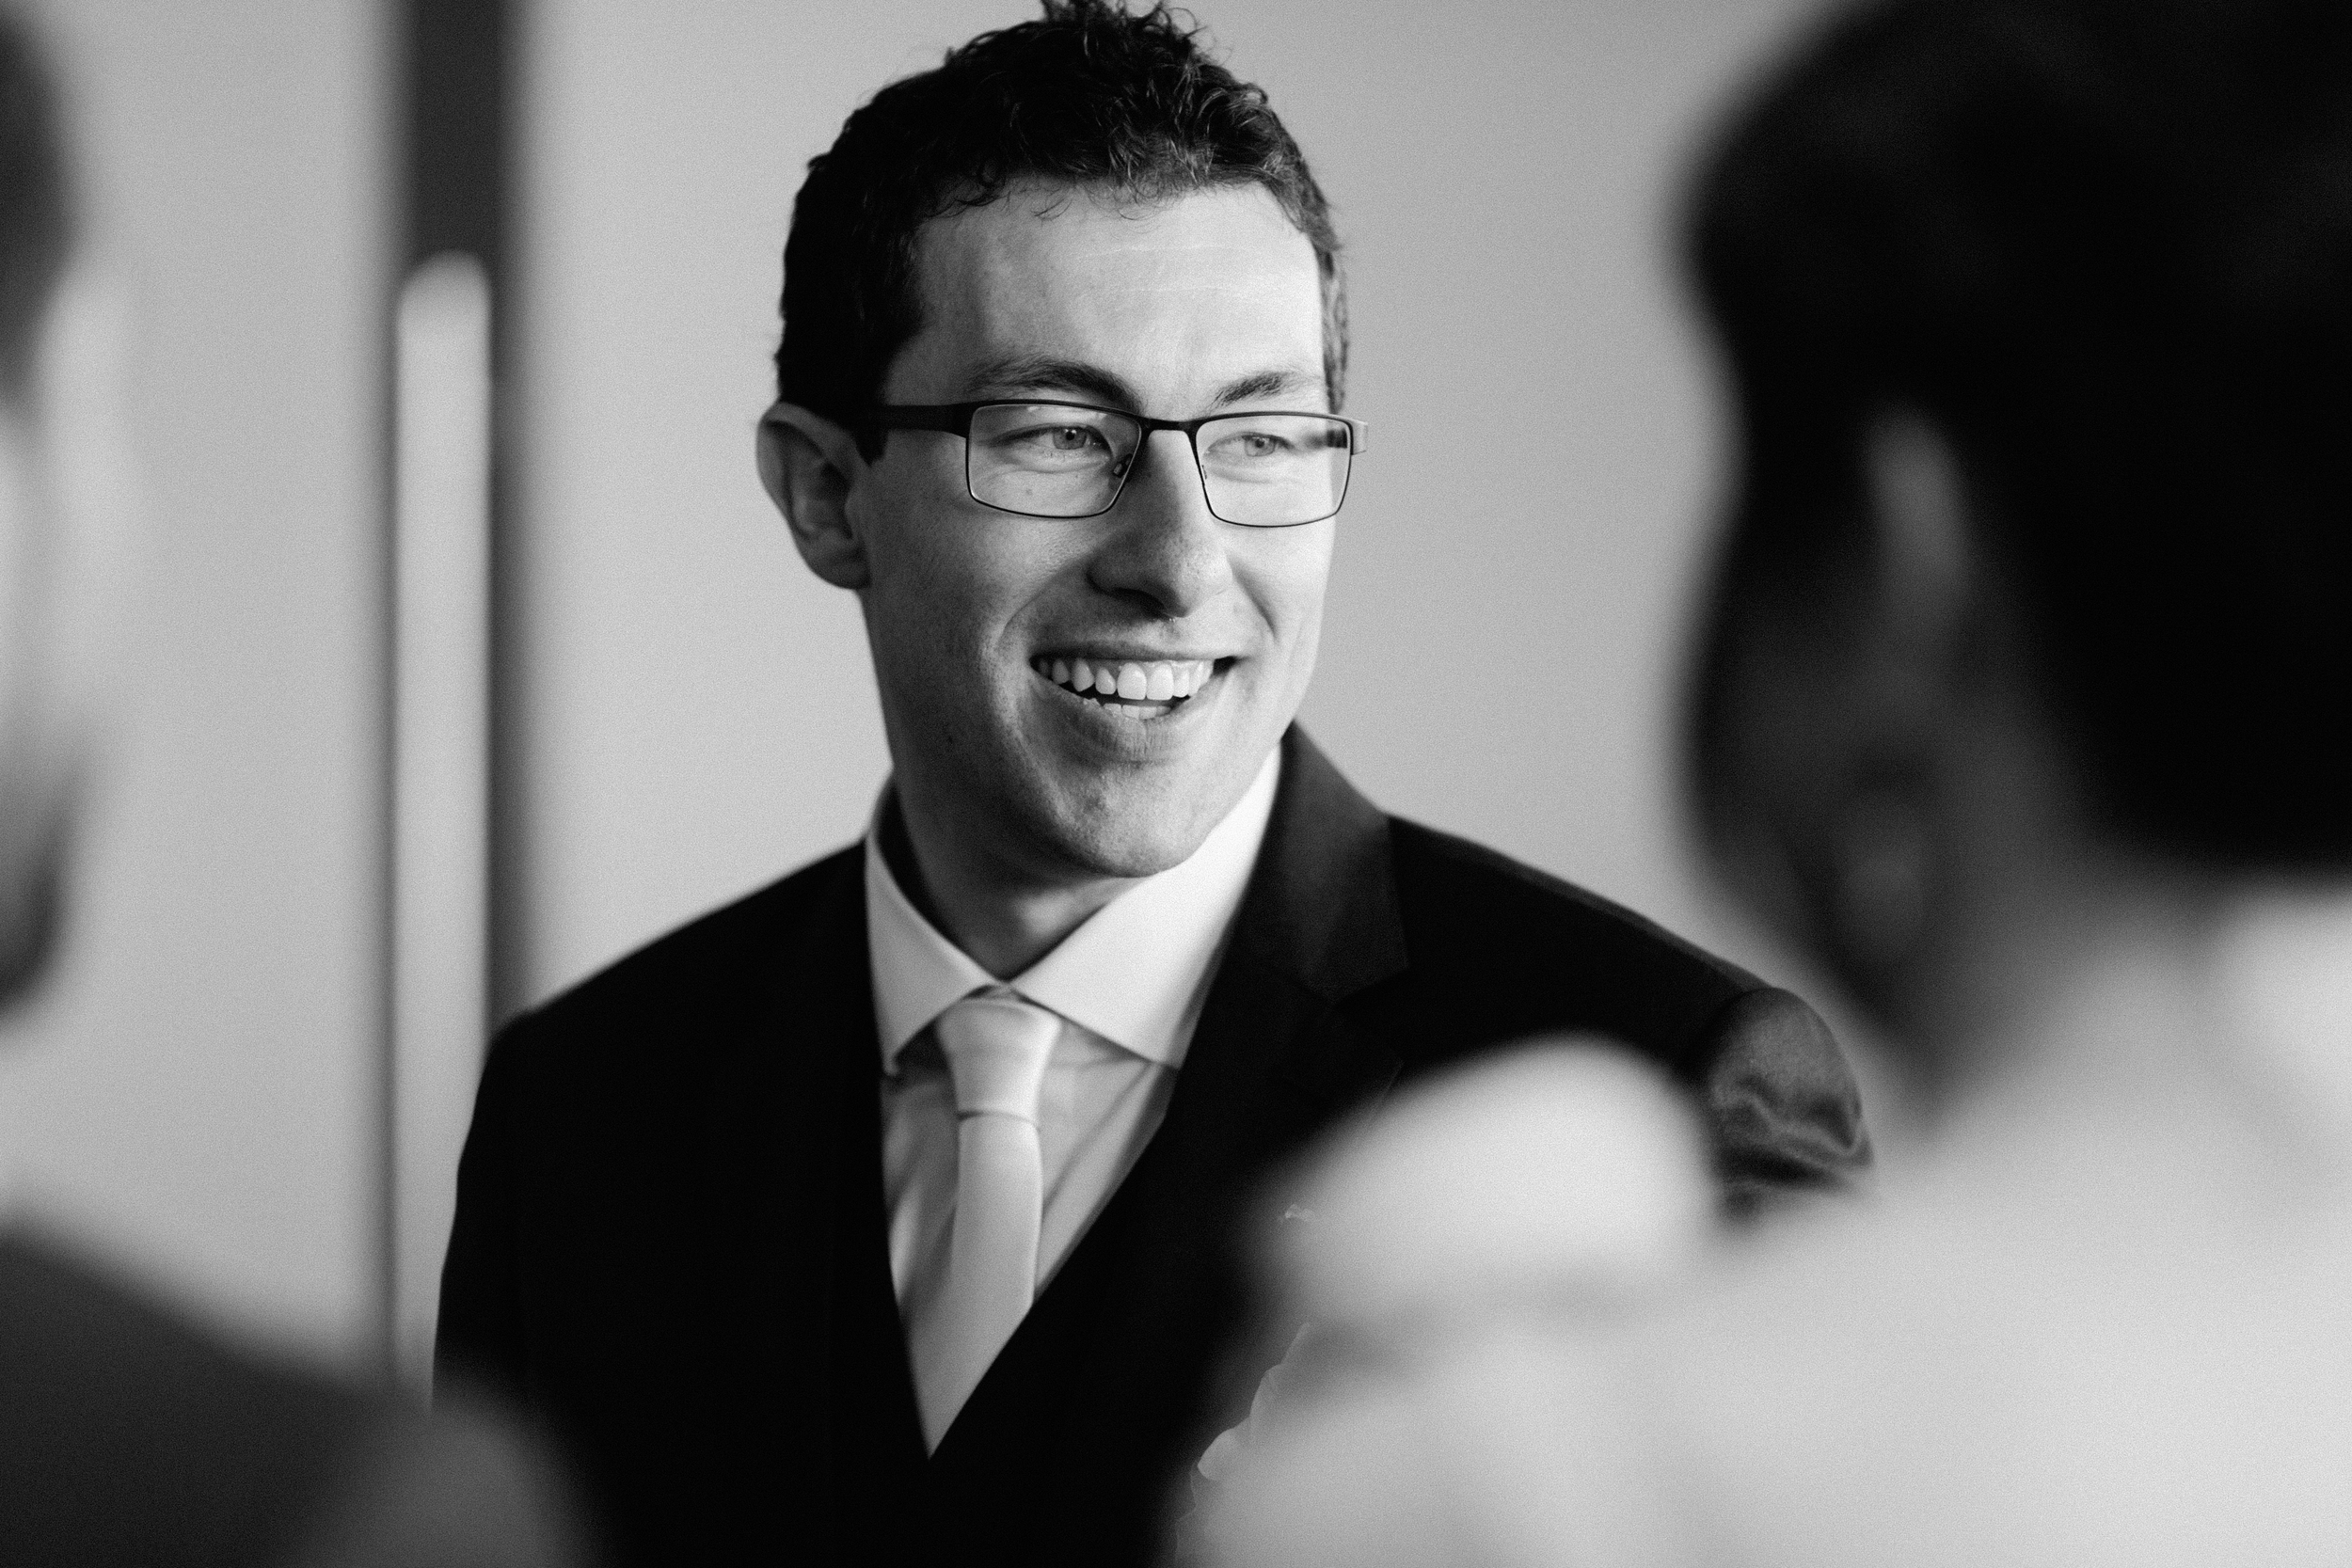 Dr Vickers on his wedding day. He had orthodontic work and whitened his teeth prior to his wedding day.